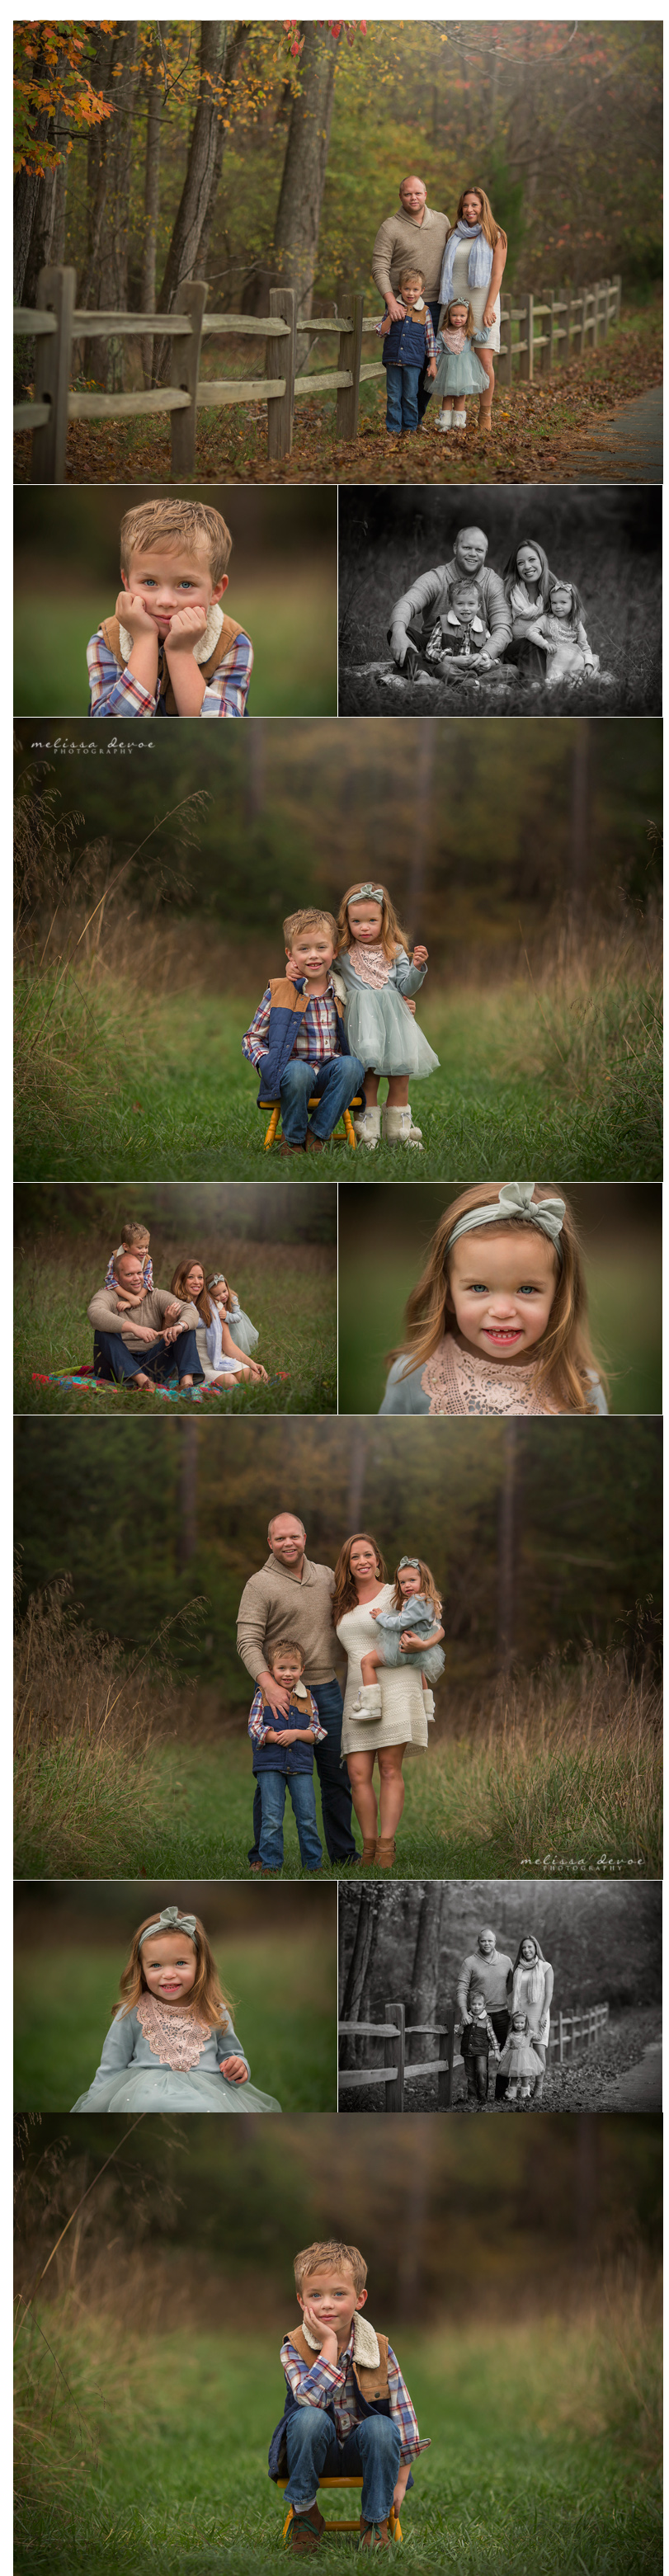 Raleigh Durham Child and Family Photographer Melissa DeVoe 1